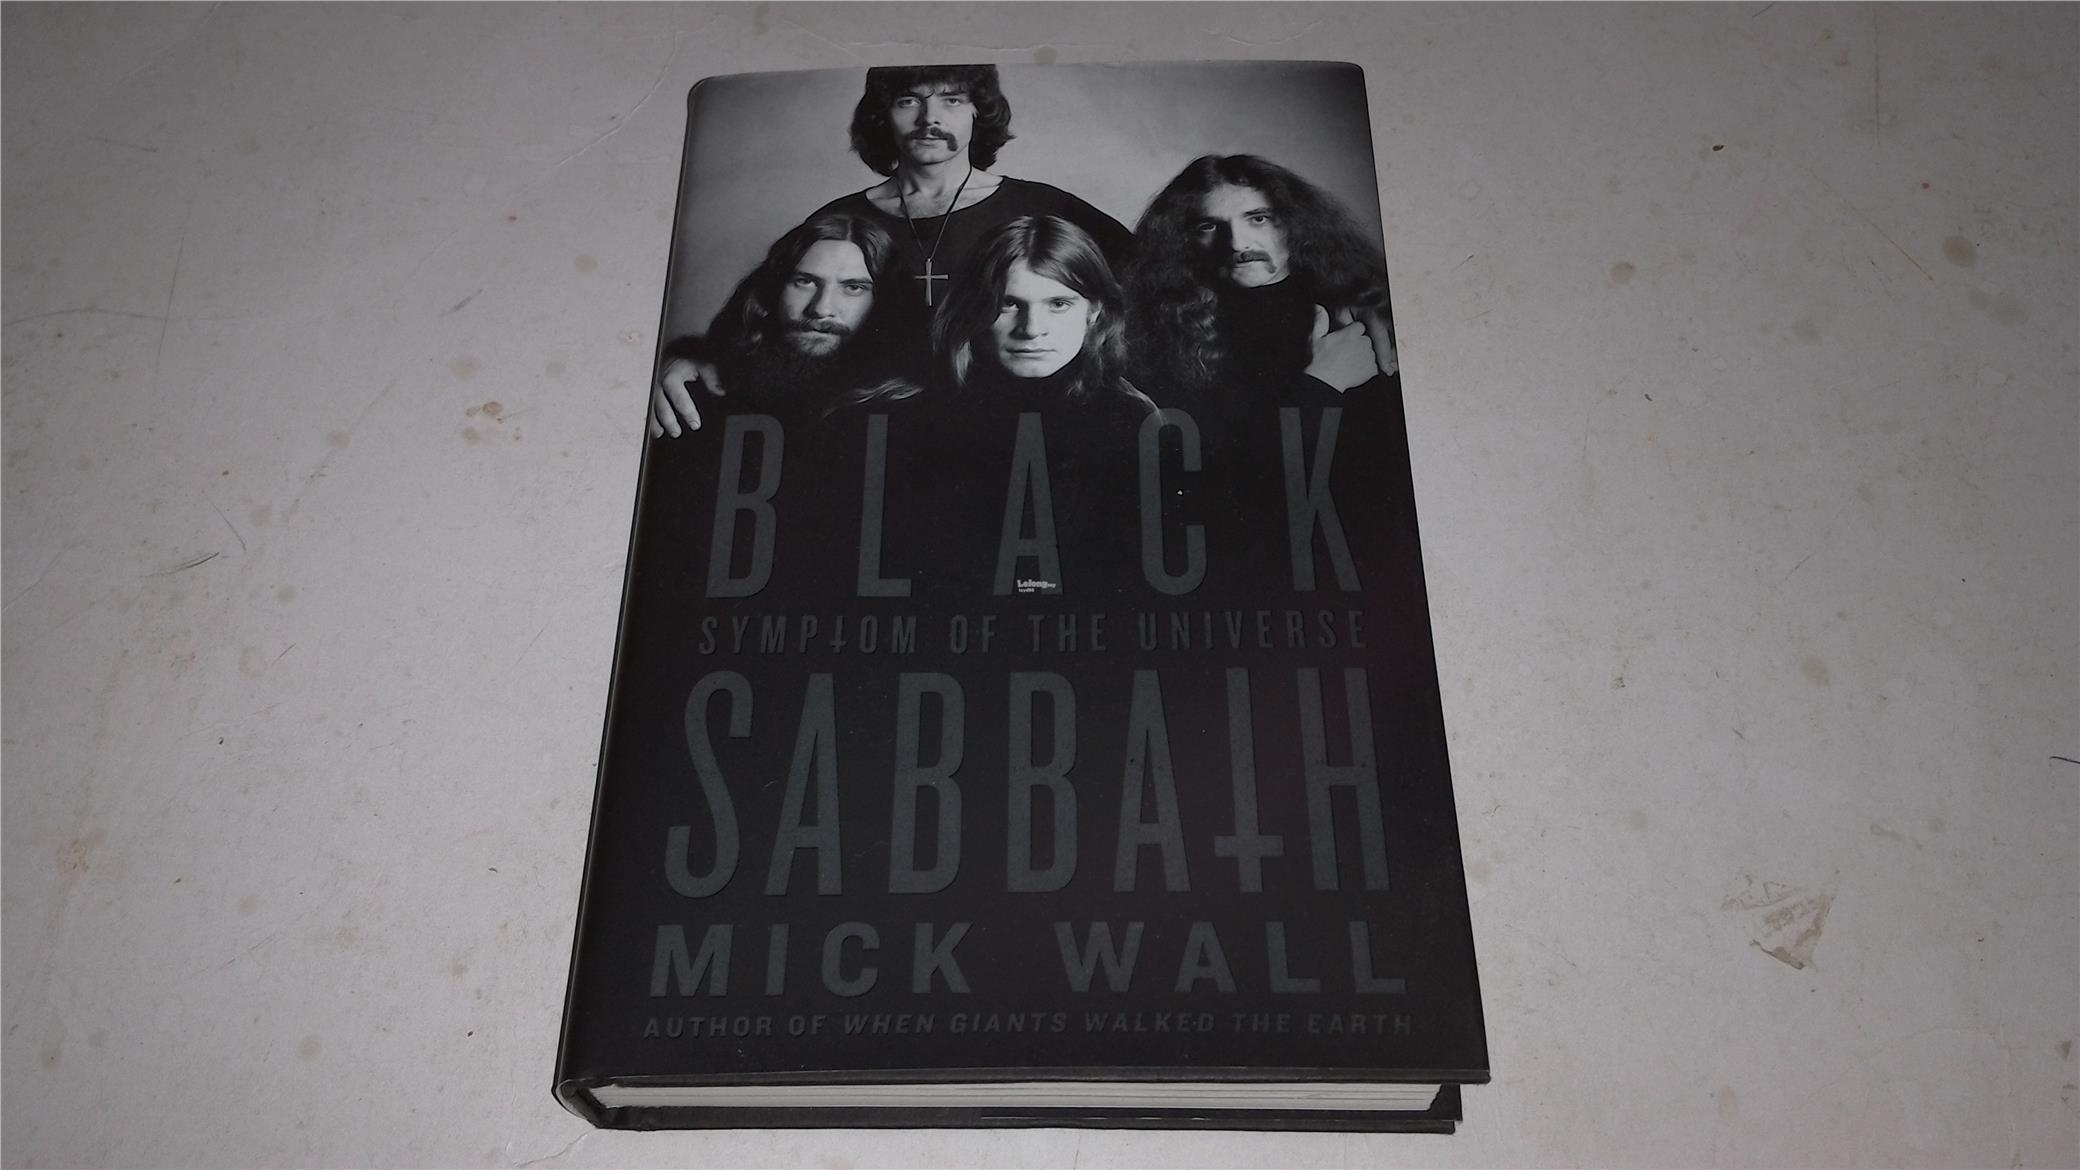 BLACK SABBATH BOOK BIOGRAPHY